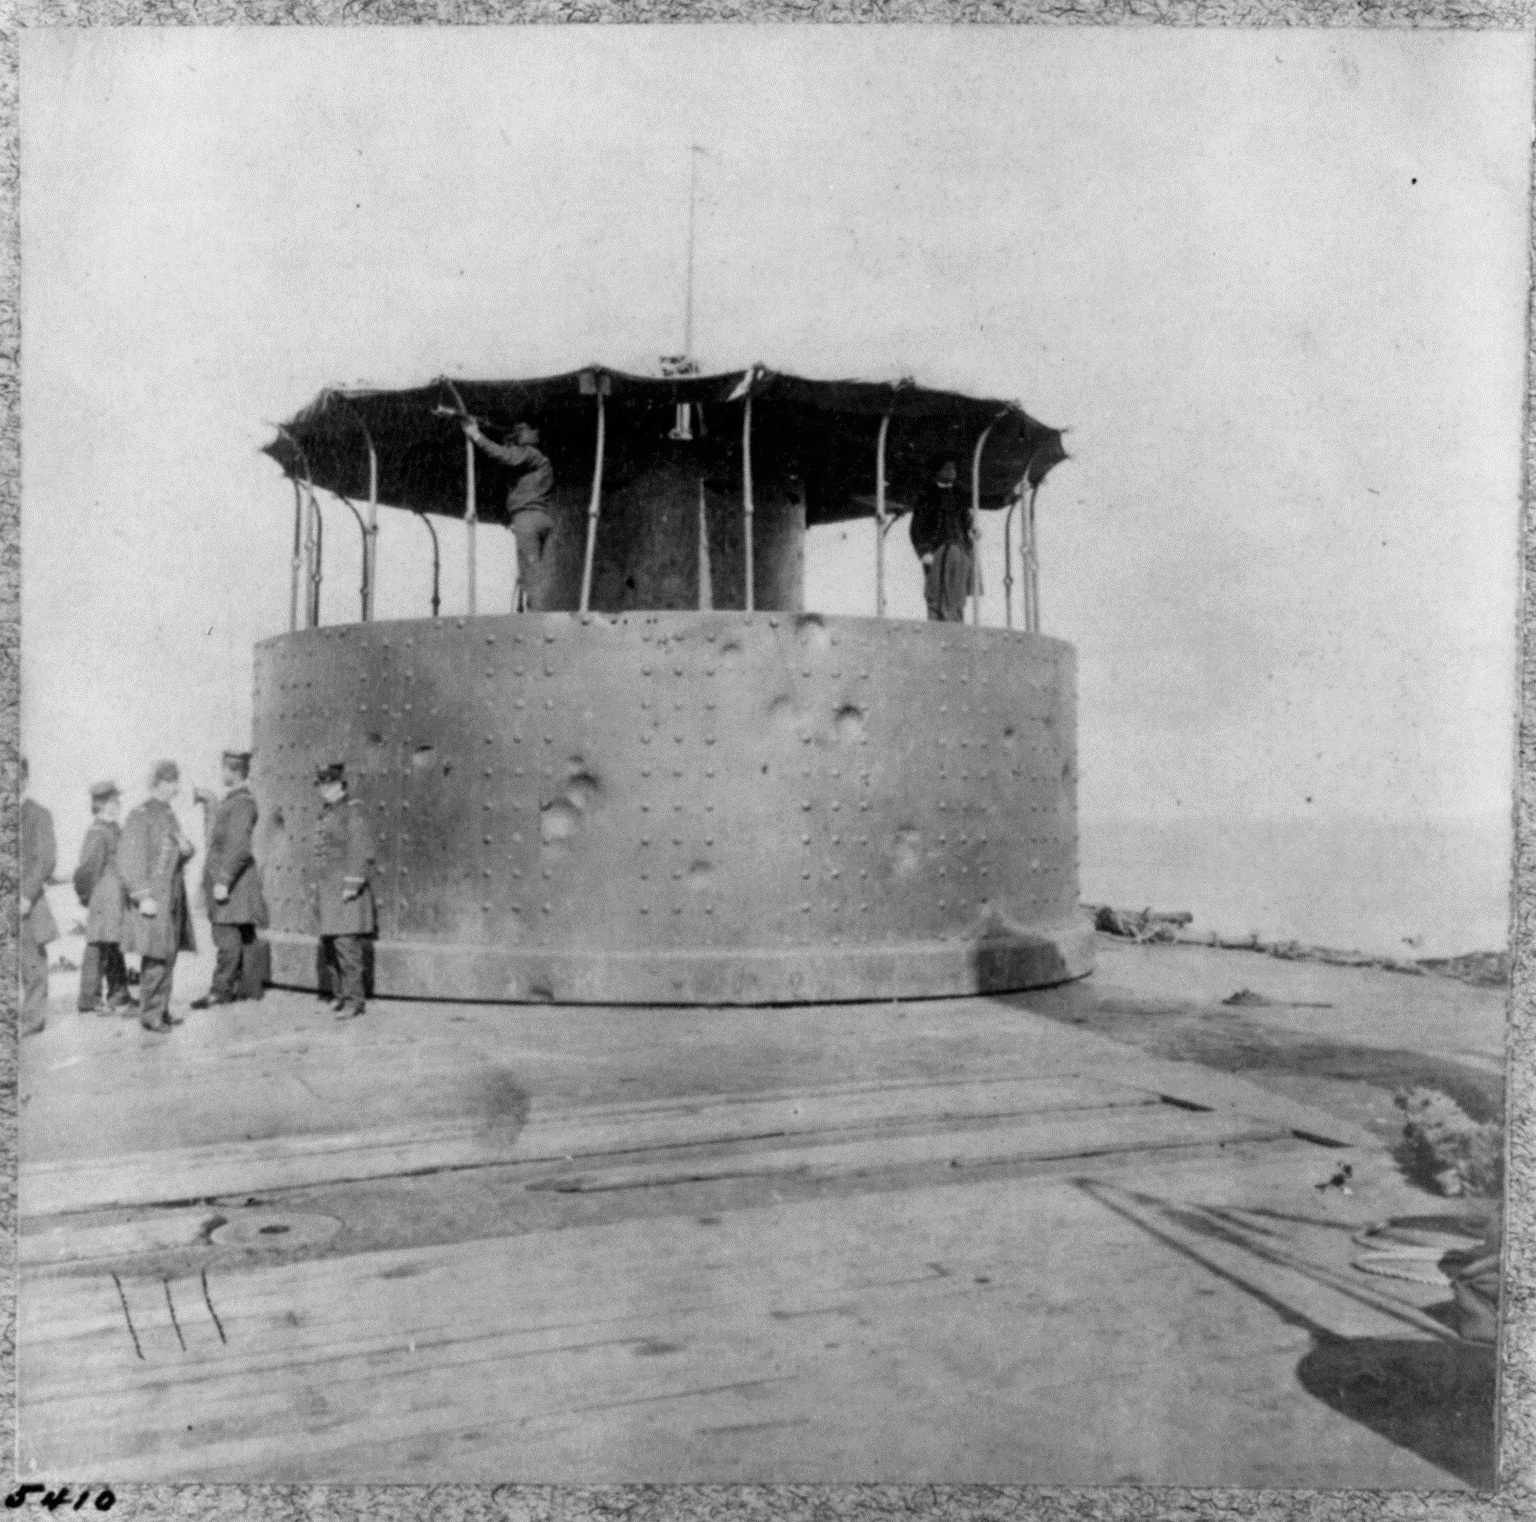 An improved Monitor, the U.S.S. Passaic, photographed to show battle damage to its turret.